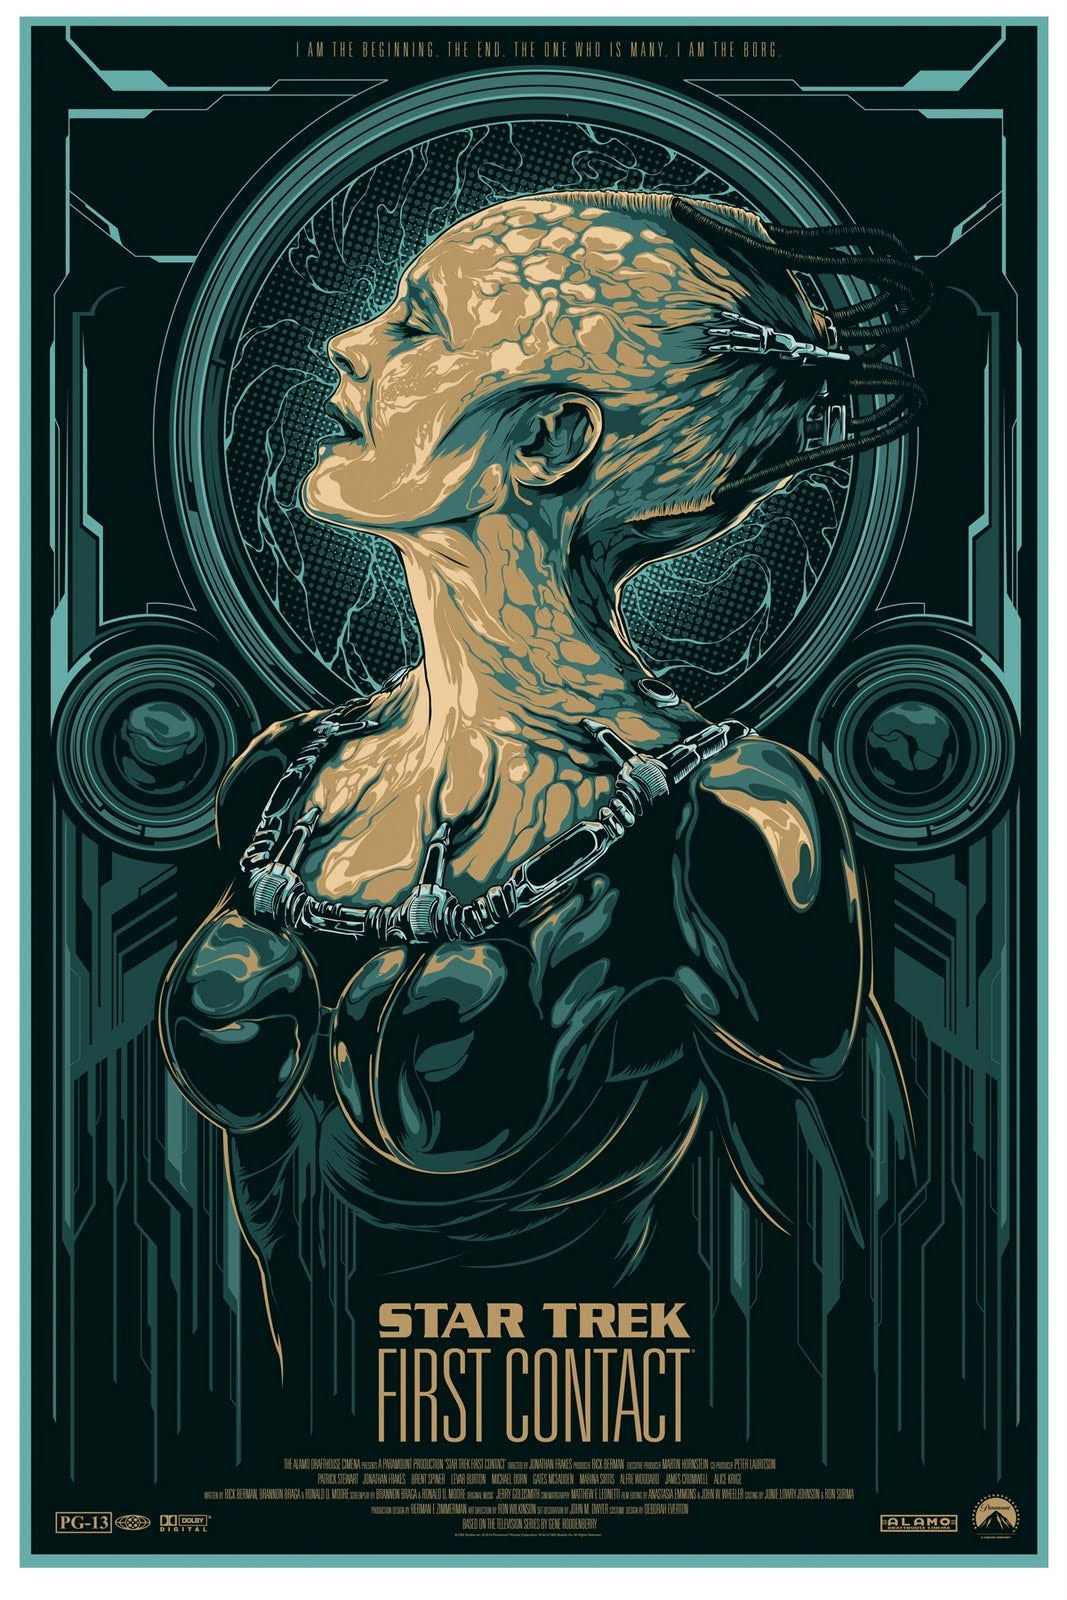 Here's Just a Bunch of Awesome Star Trek Art